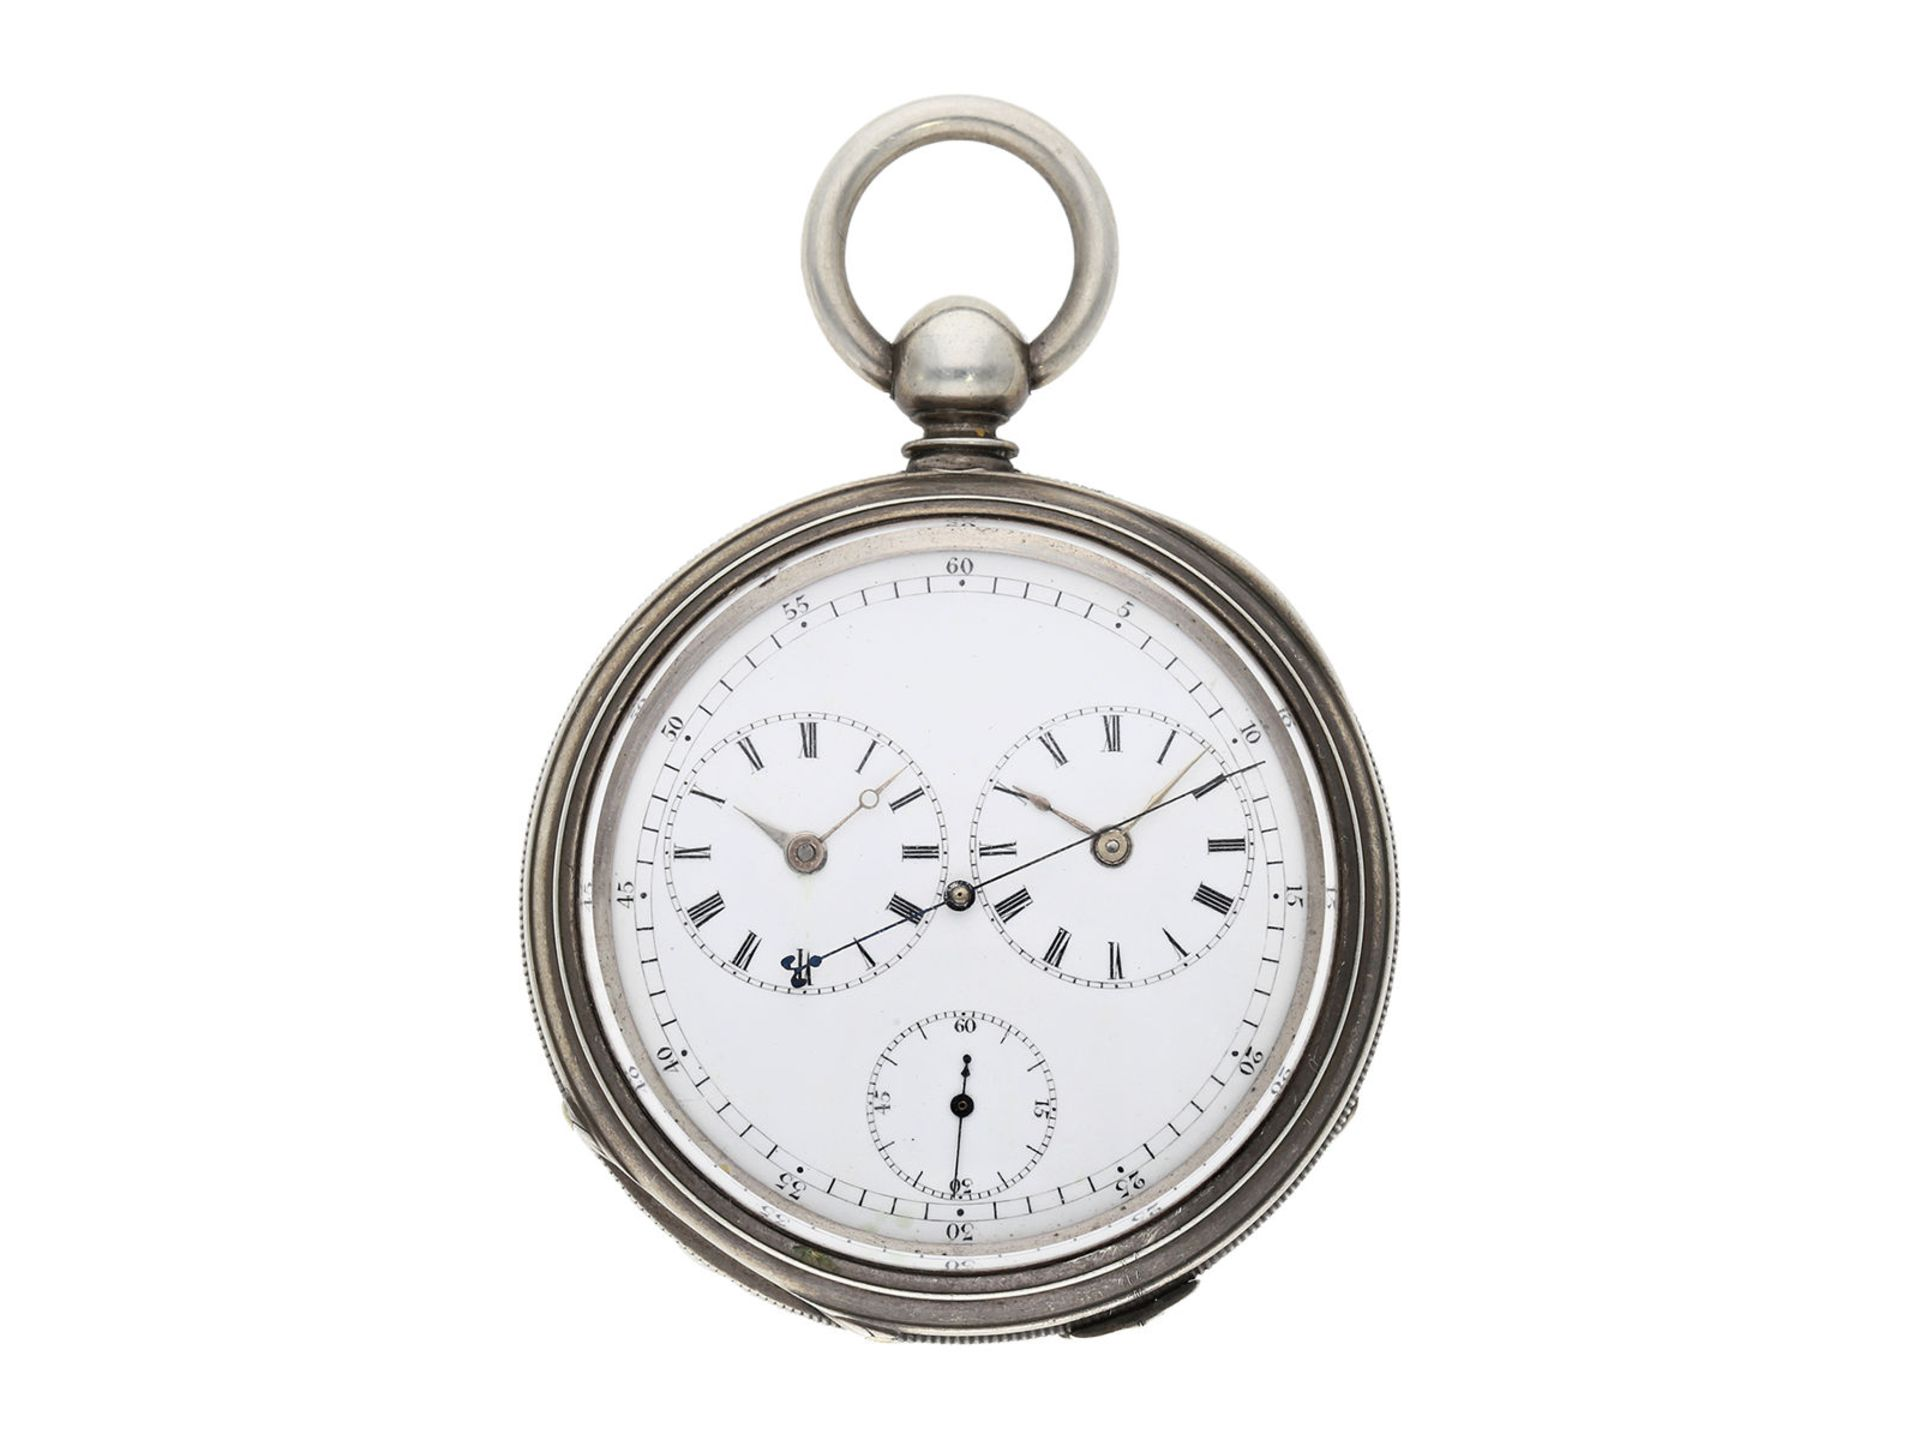 Pocket watch: early deck watch with 2 time zones and independent, stoppable centre seconds, signed